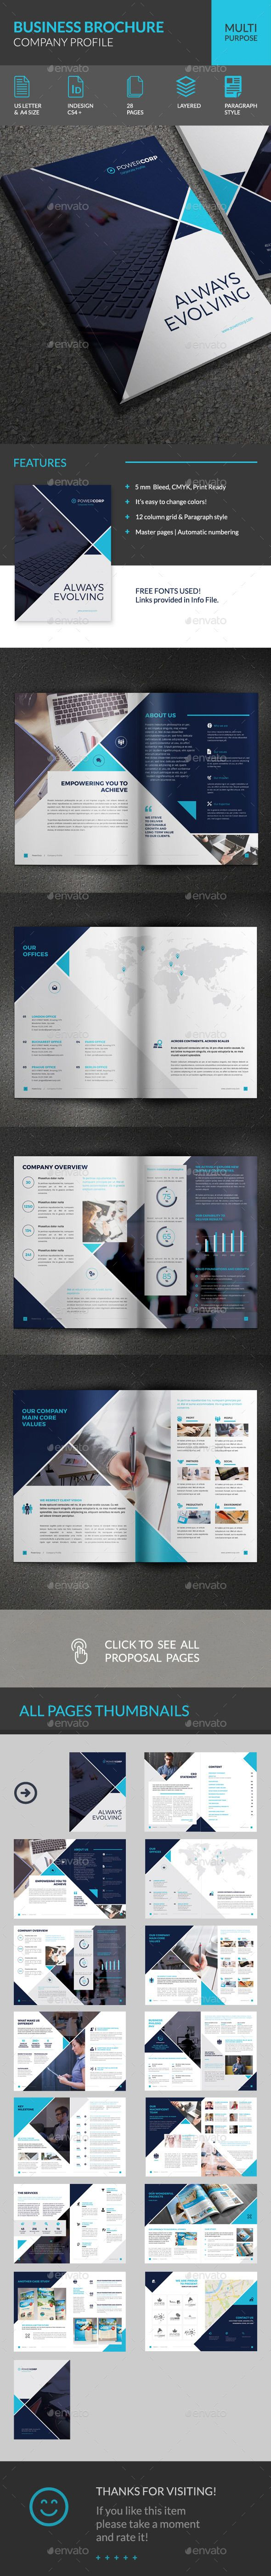 PowerCorp Business Brochure - Corporate Profile - Corporate Brochures